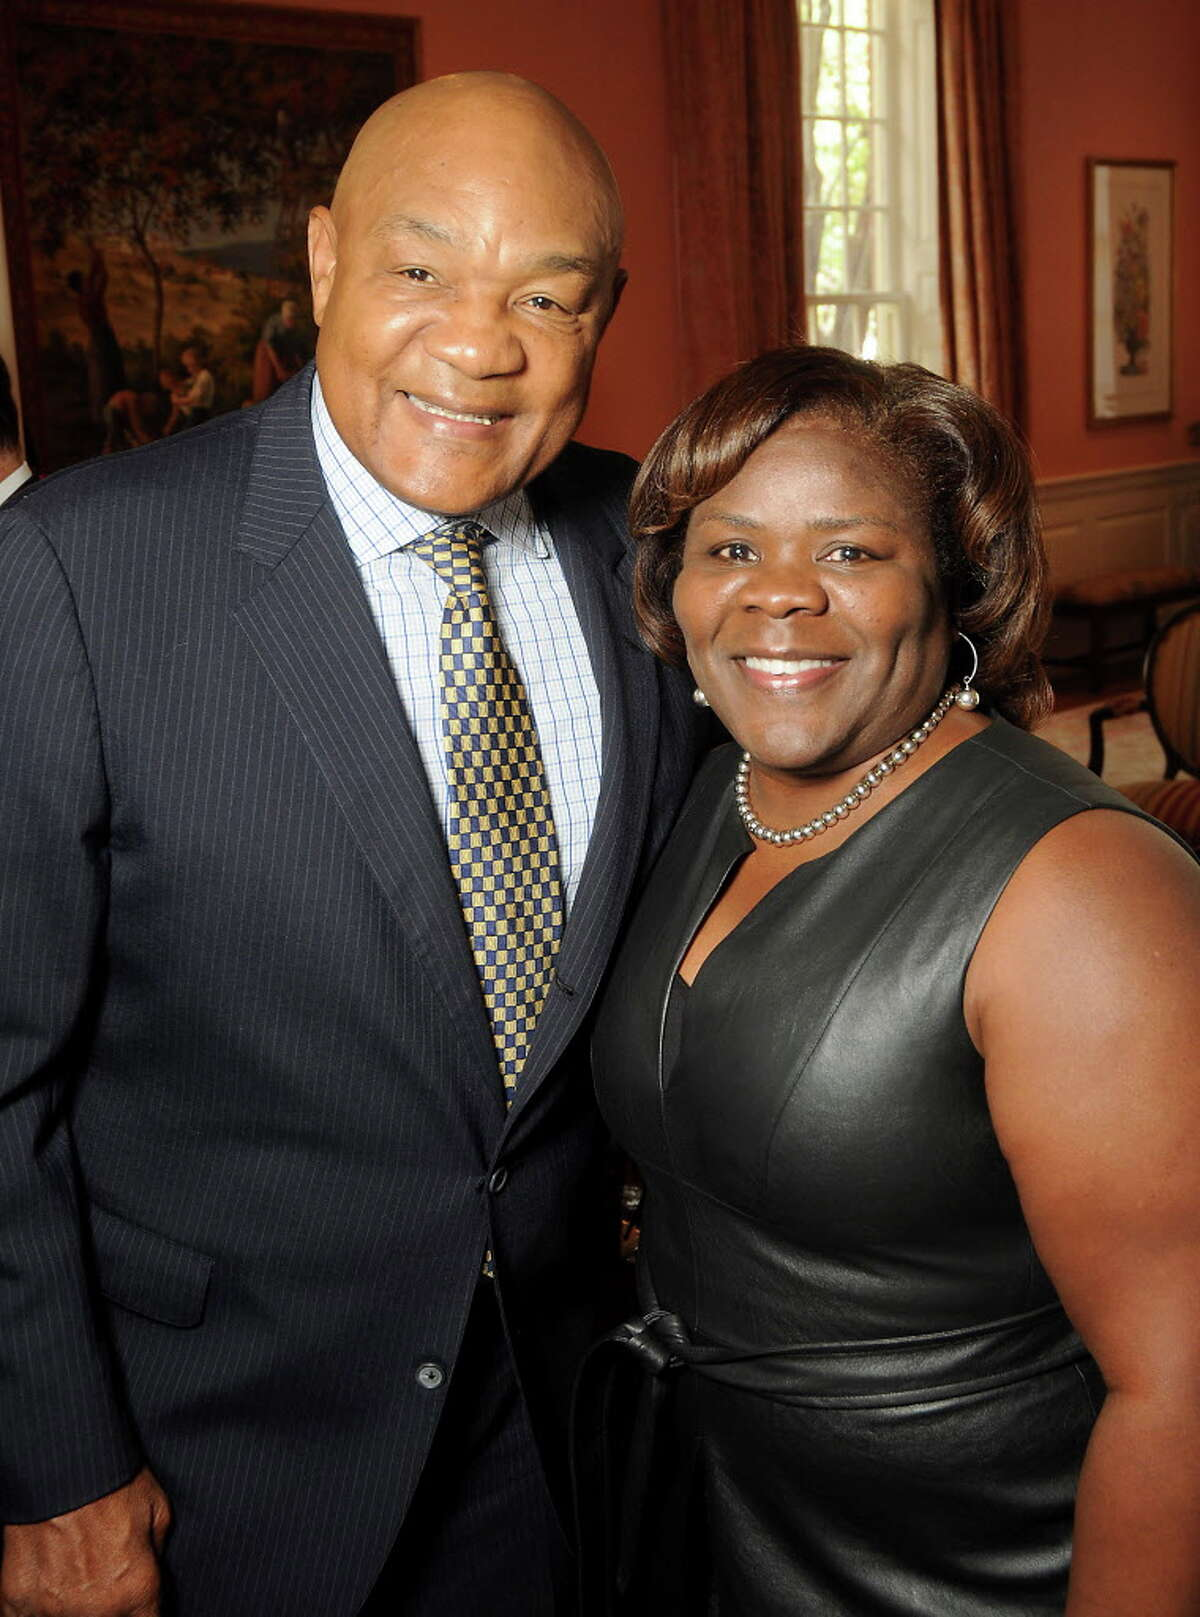 """Honoree George Foreman and Connie Whipple at the Fifth Ward Enrichment Program's """"Changing Men, Changing Lives"""" luncheon at the Junior League of Houston honoring George Foreman Wednesday Oct. 25, 2017.(Dave Rossman Photo)"""